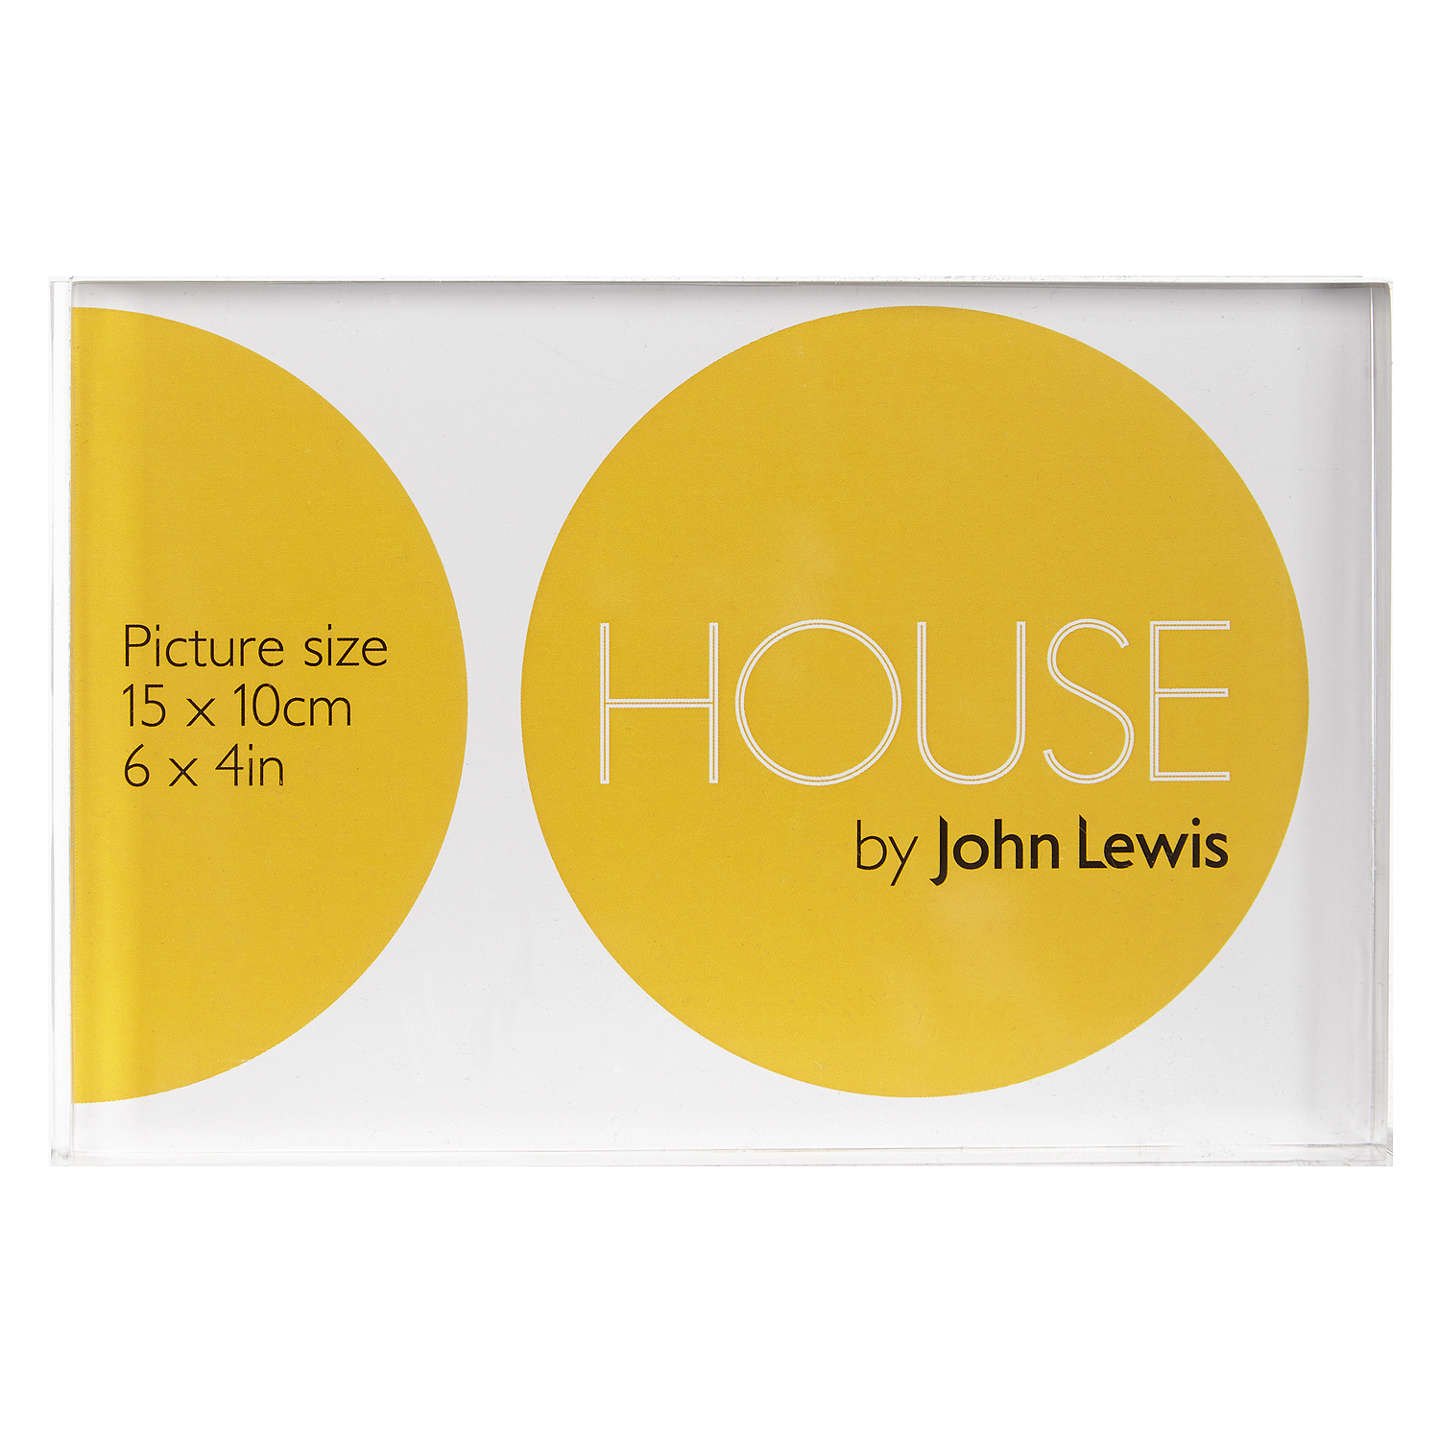 house by john lewis acrylic frame 4 x 6 clear at john lewis. Black Bedroom Furniture Sets. Home Design Ideas